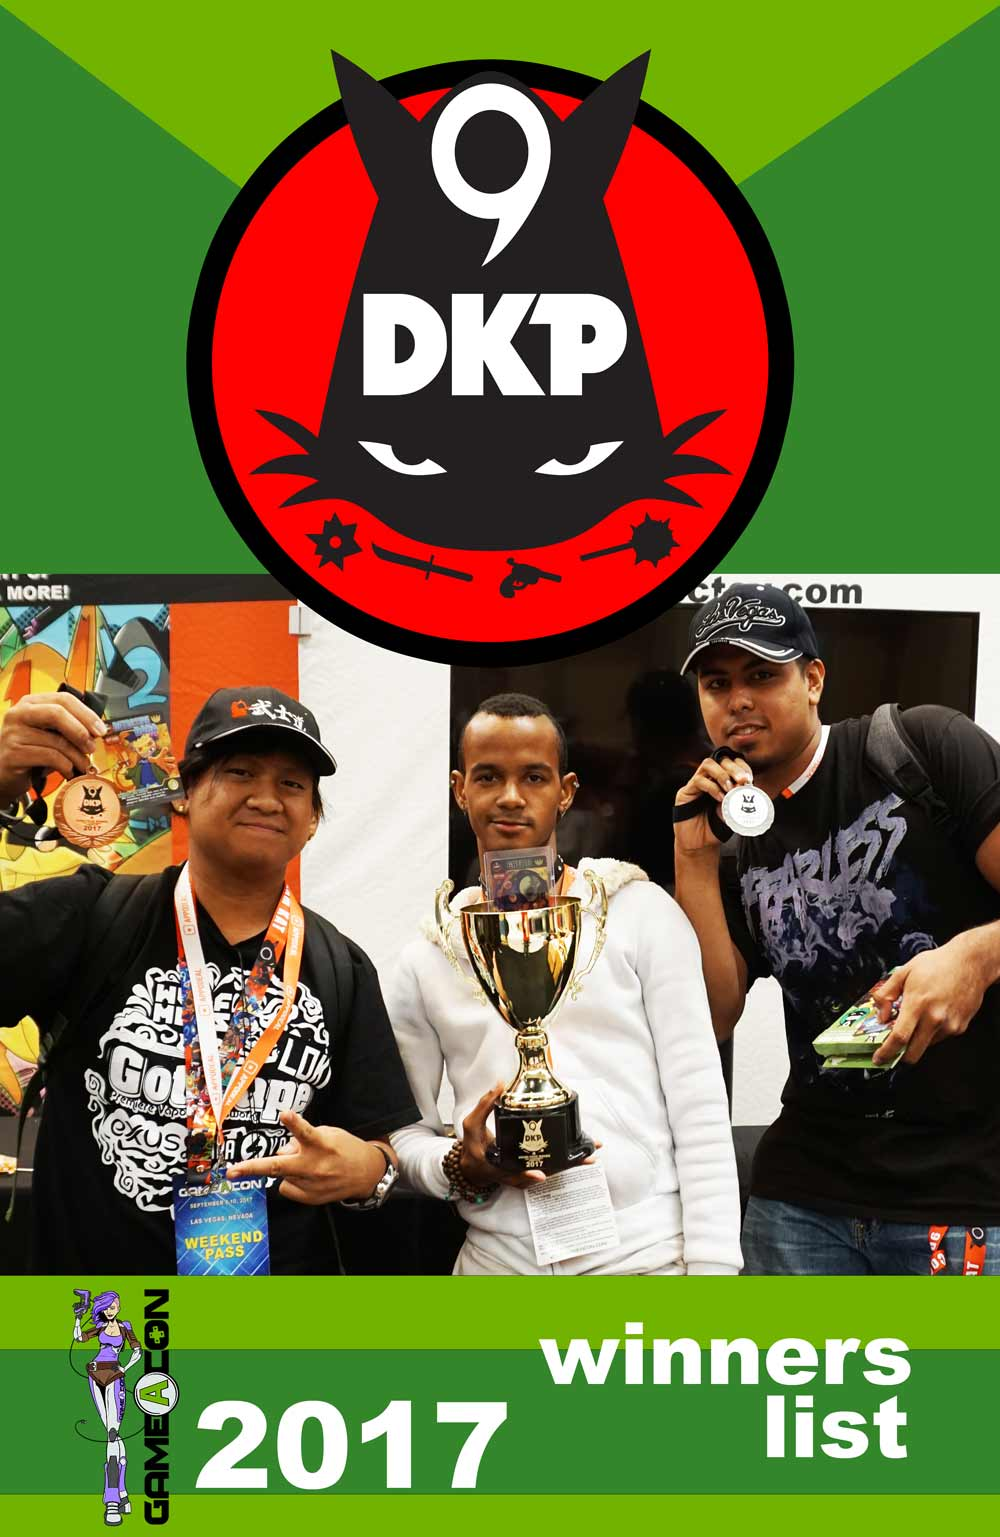 9dkp-gameacon-winners.jpg